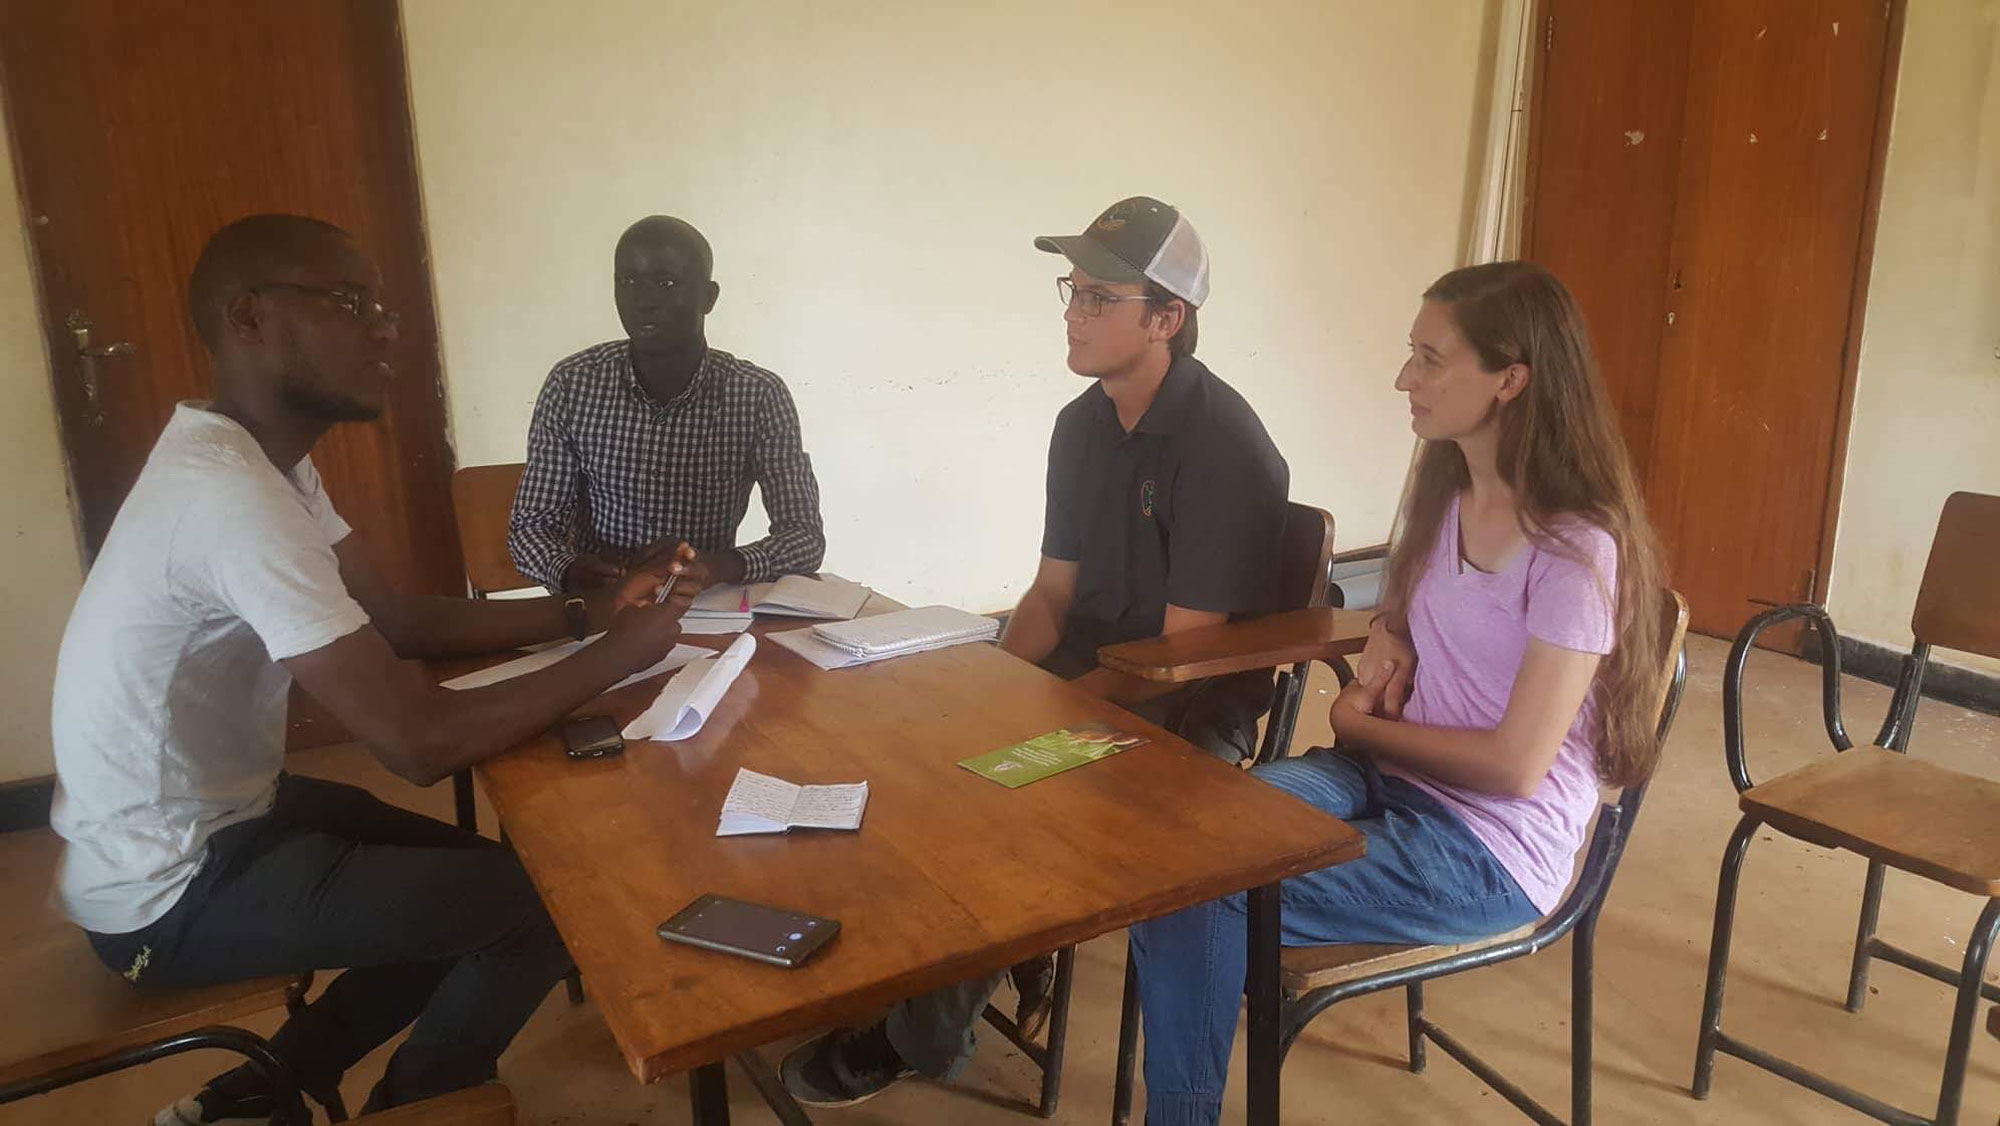 Nicholas, Disika, Ryan, and Catherine discuss the project